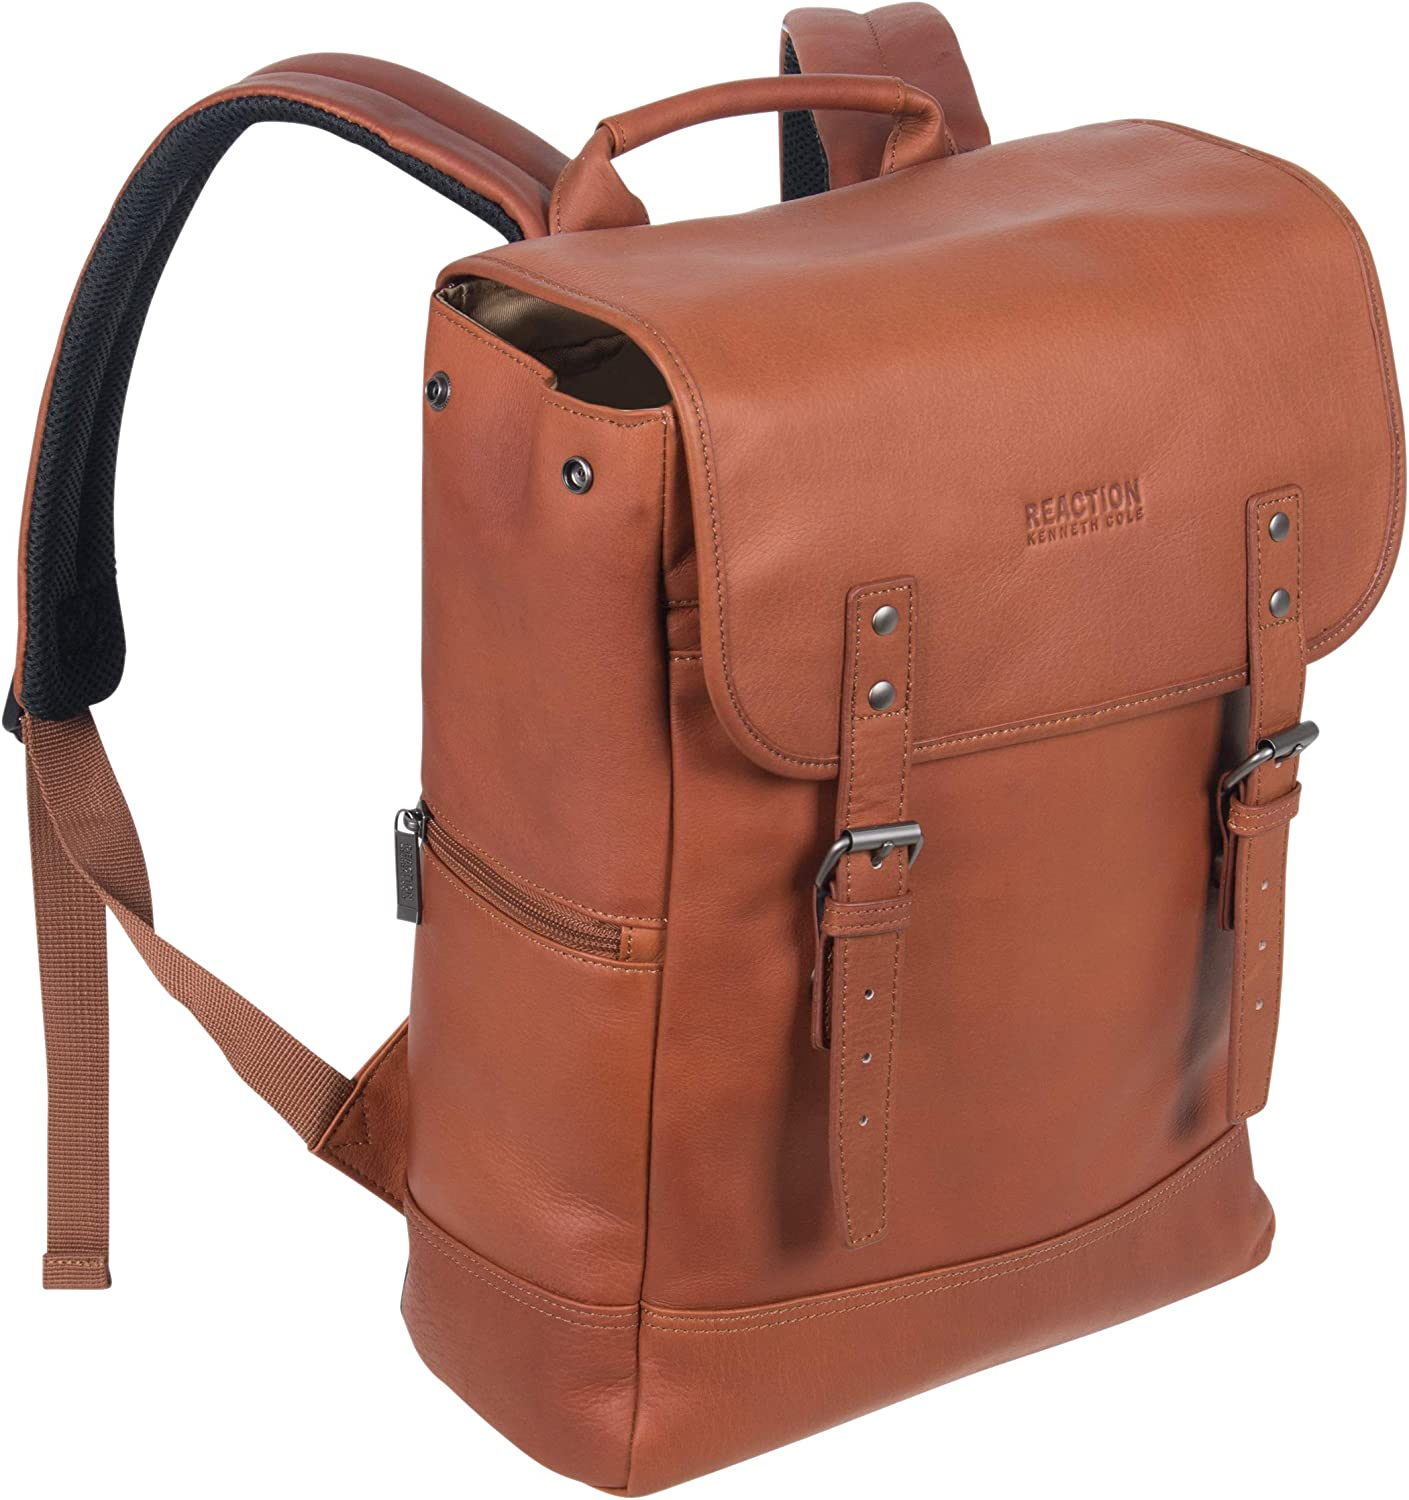 Kenneth Cole Reaction Colombian Leather Single Compartment Flapover 14.1 Laptop Backpack RFID , Cognac